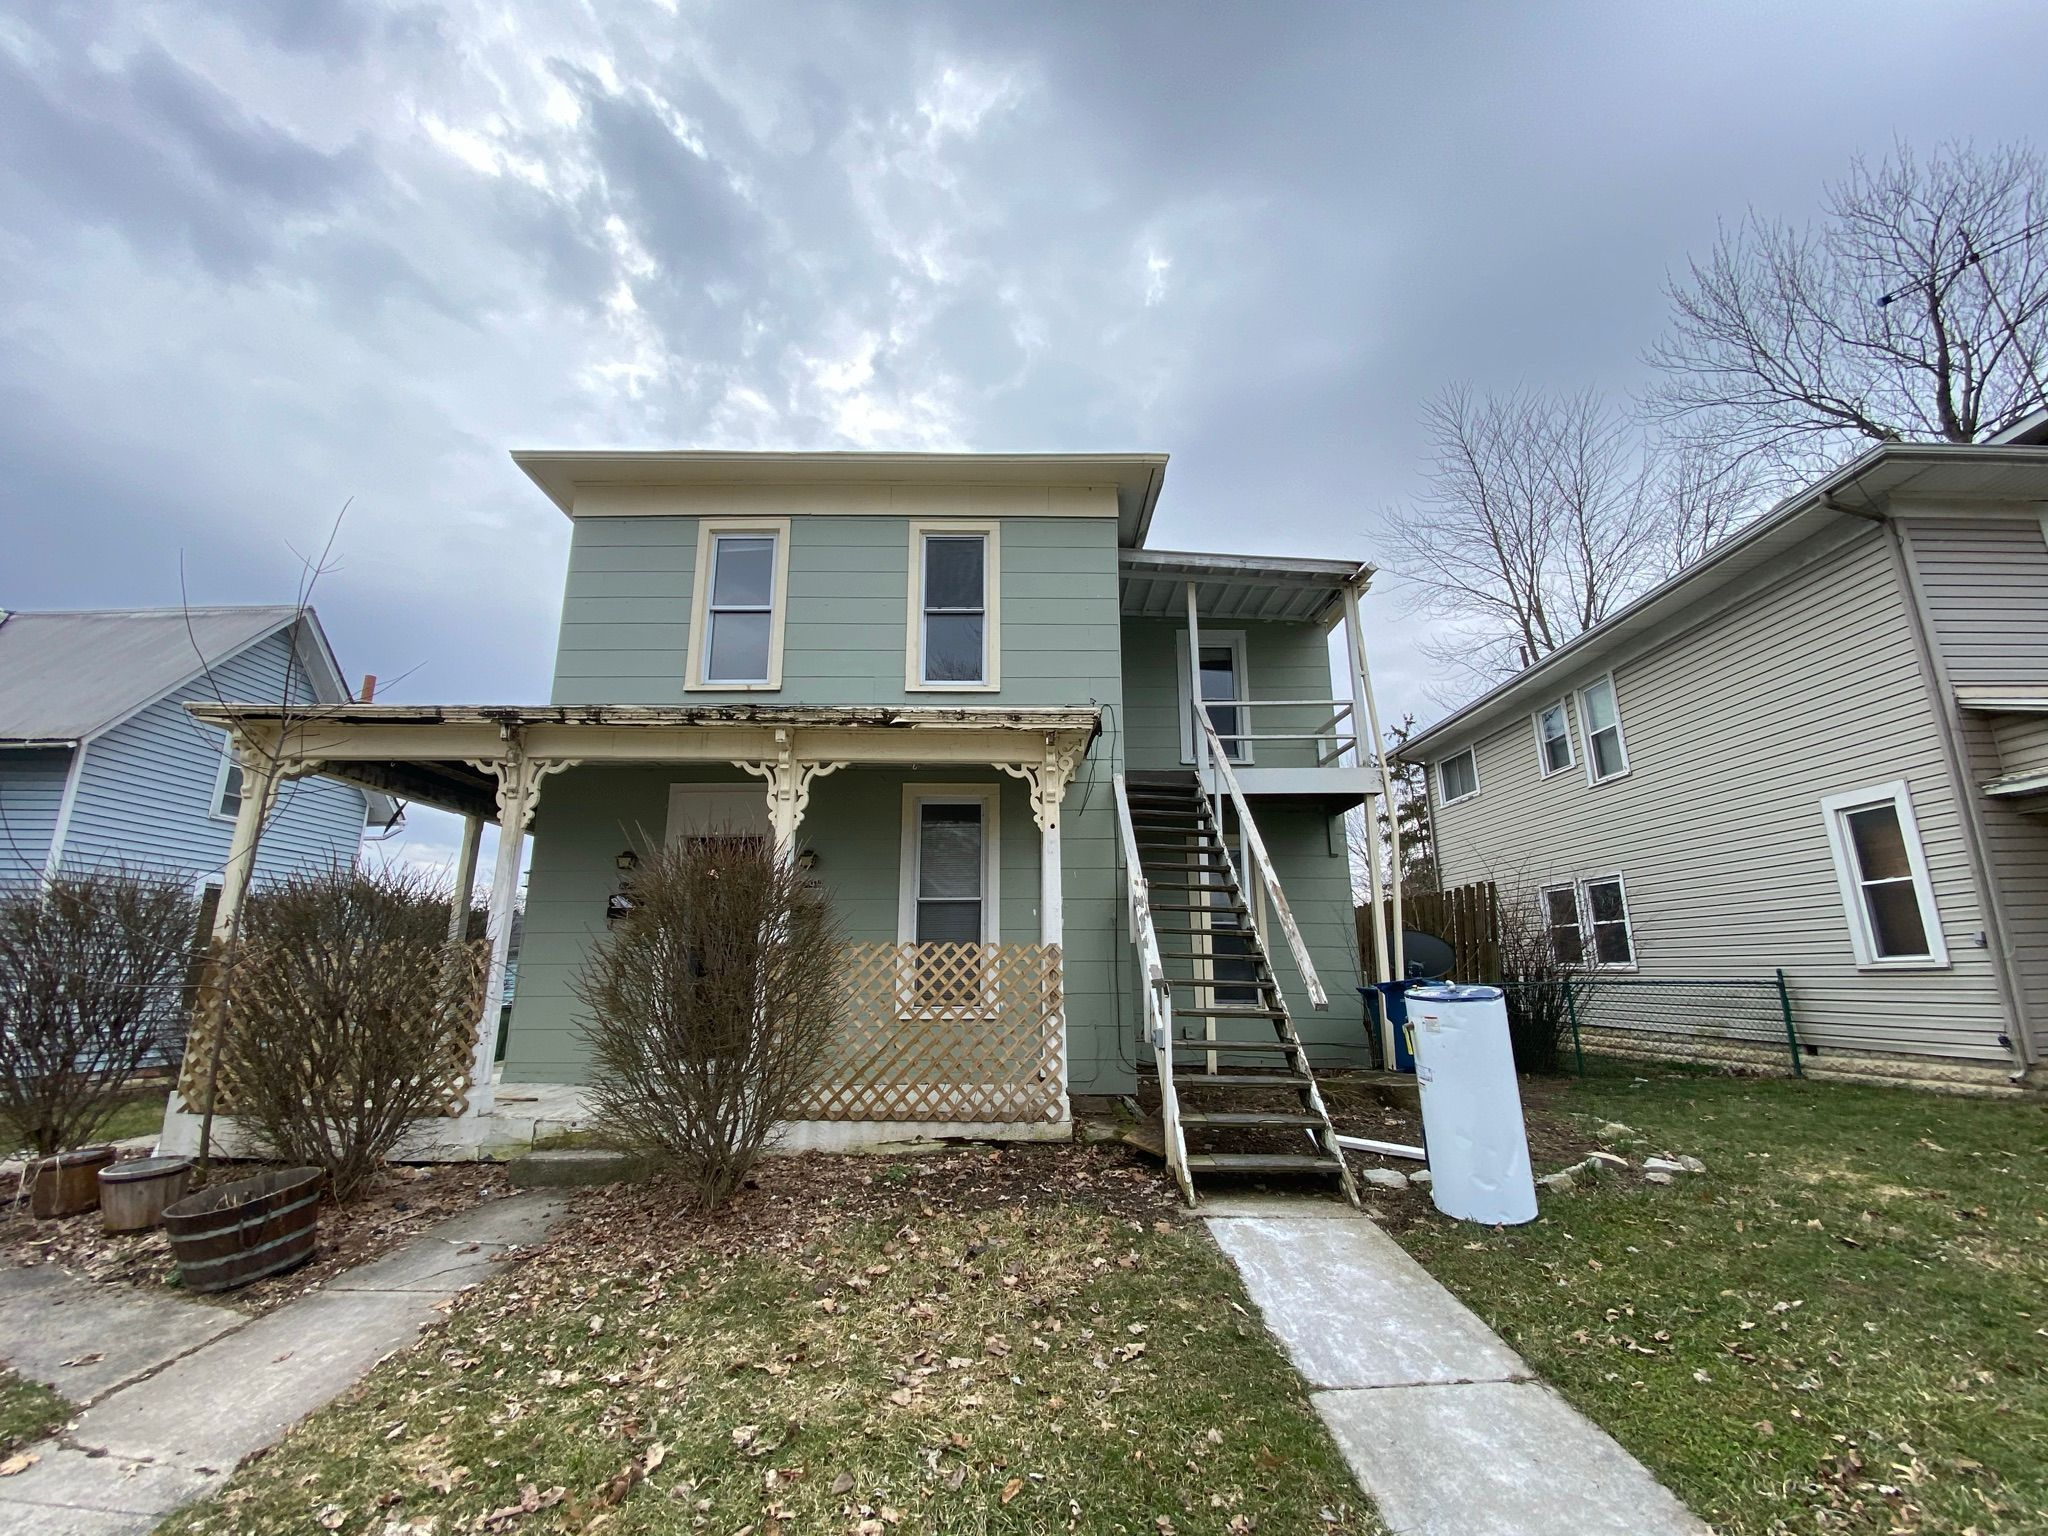 229 W 8th St, Marysville, OH